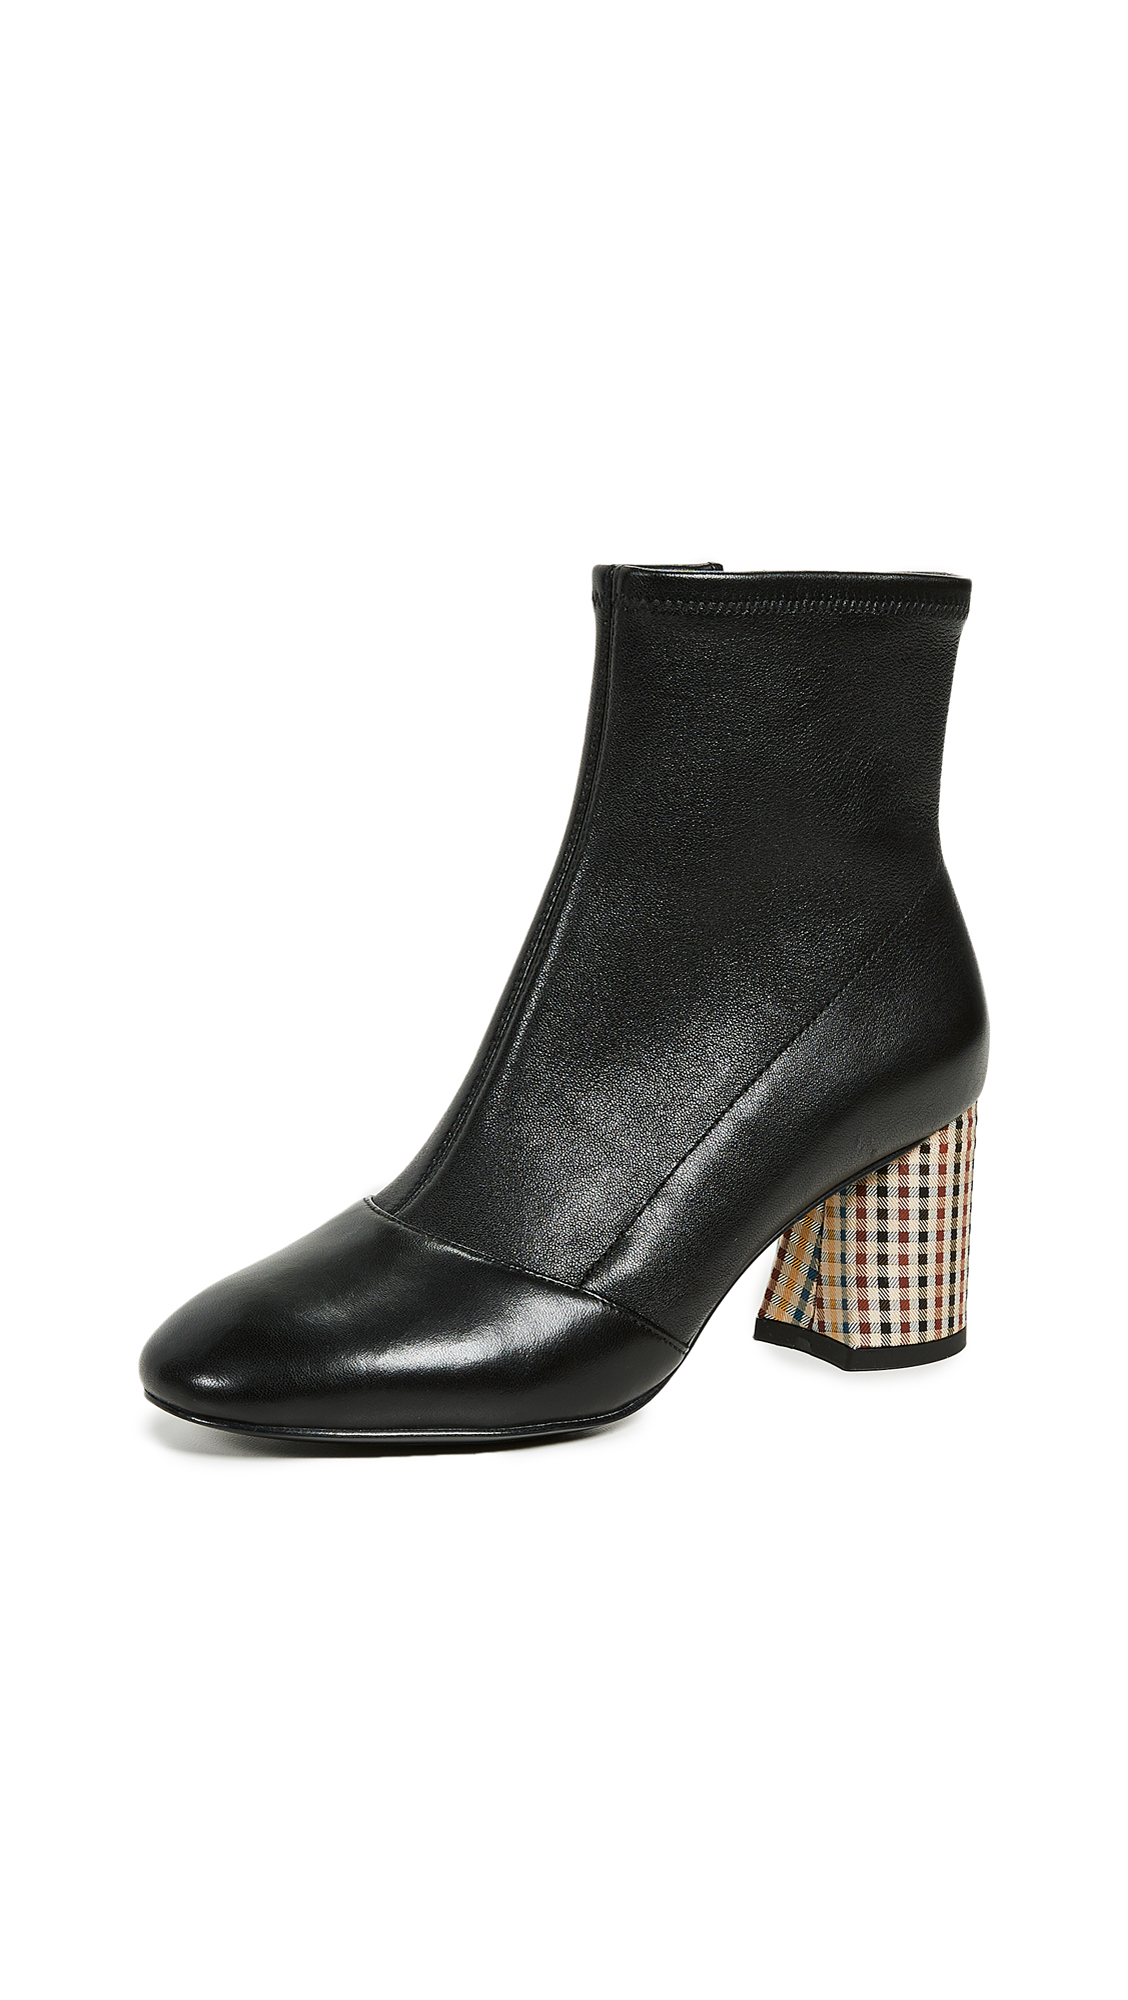 3.1 Phillip Lim Drum Stretch Ankle Booties - Black Multi